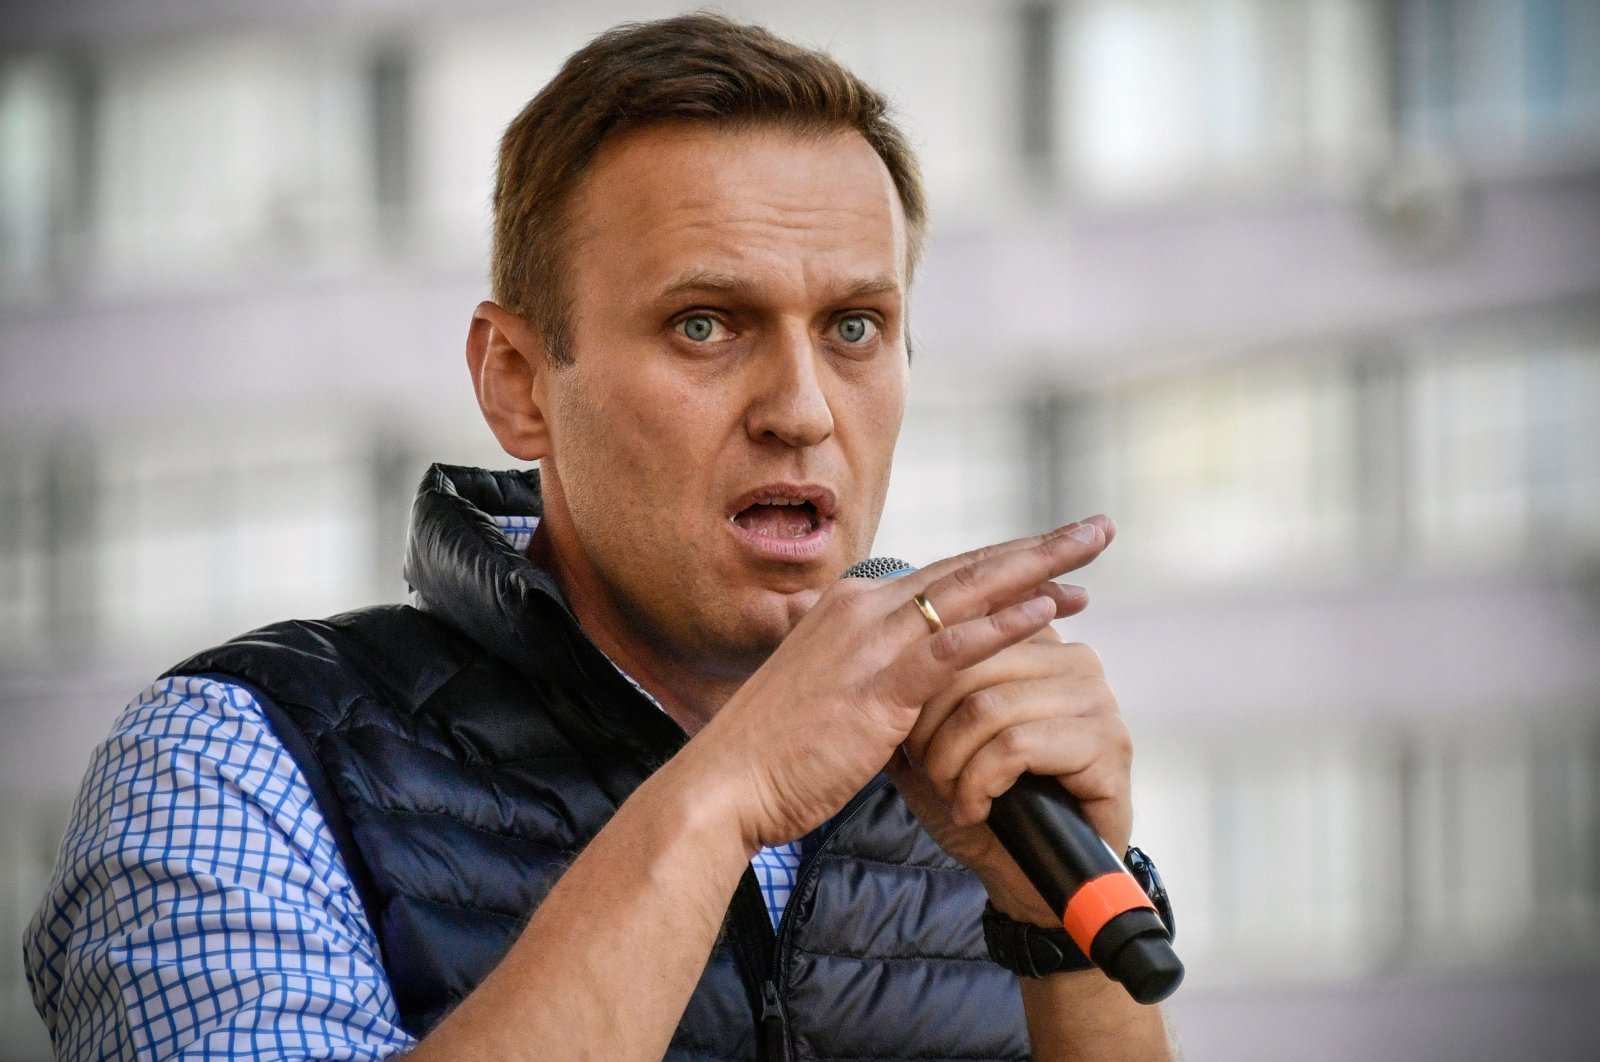 Russian opposition leader Alexei Navalny speaks during an opposition rally in central Moscow on April 30, 2018. (AFP Photo)